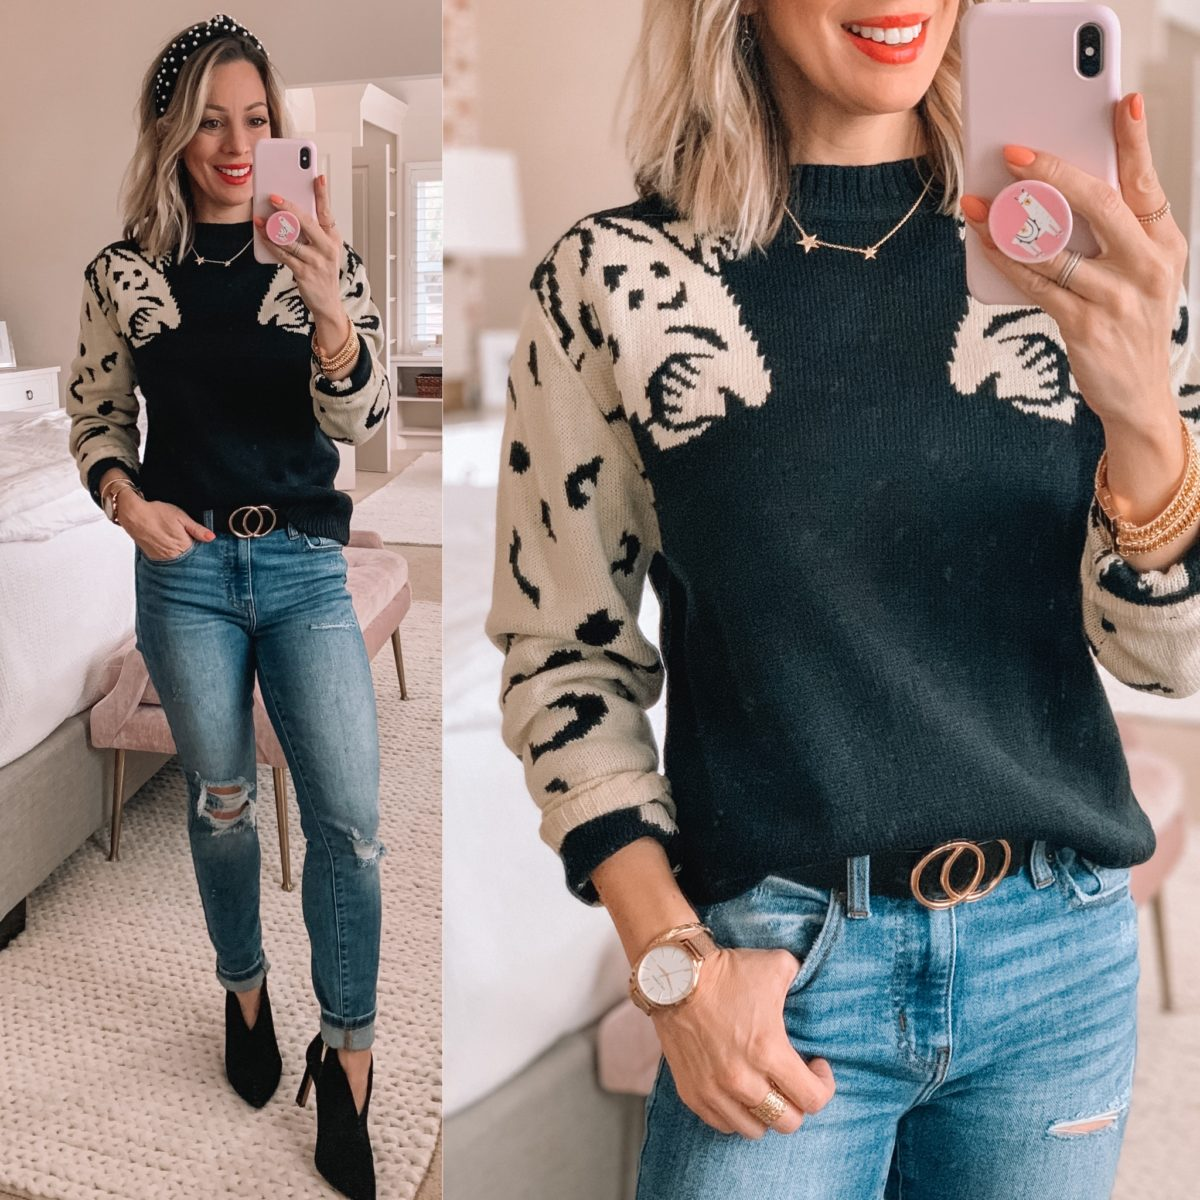 Leopard Sleeve Sweater, Distressed Blue Jeans, Black Booties, Star Necklace